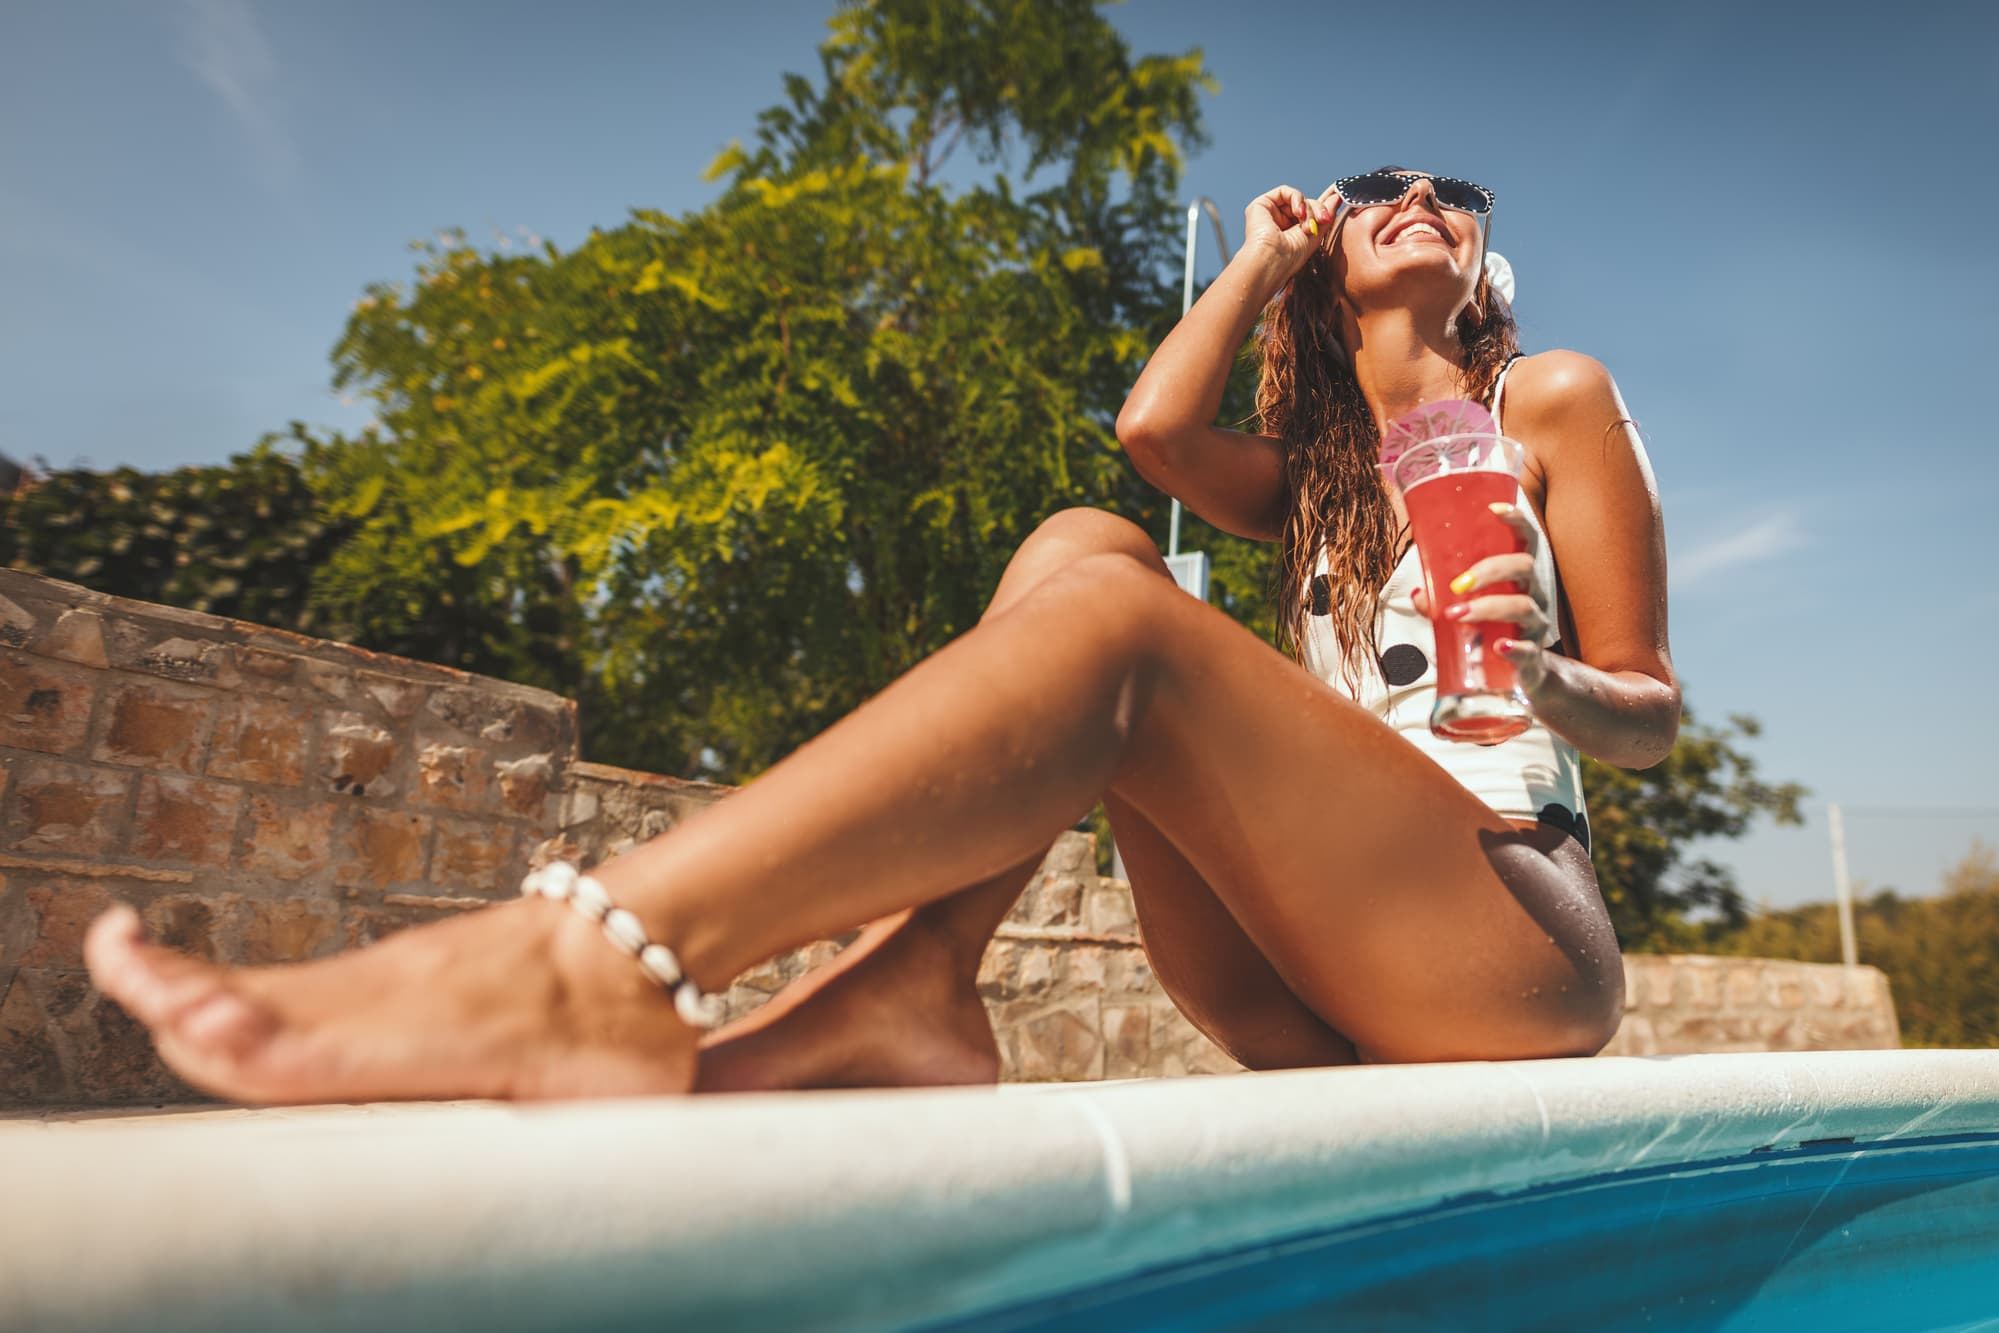 A smiling girl by the pool on a sunny day: Smile captions for Instagram